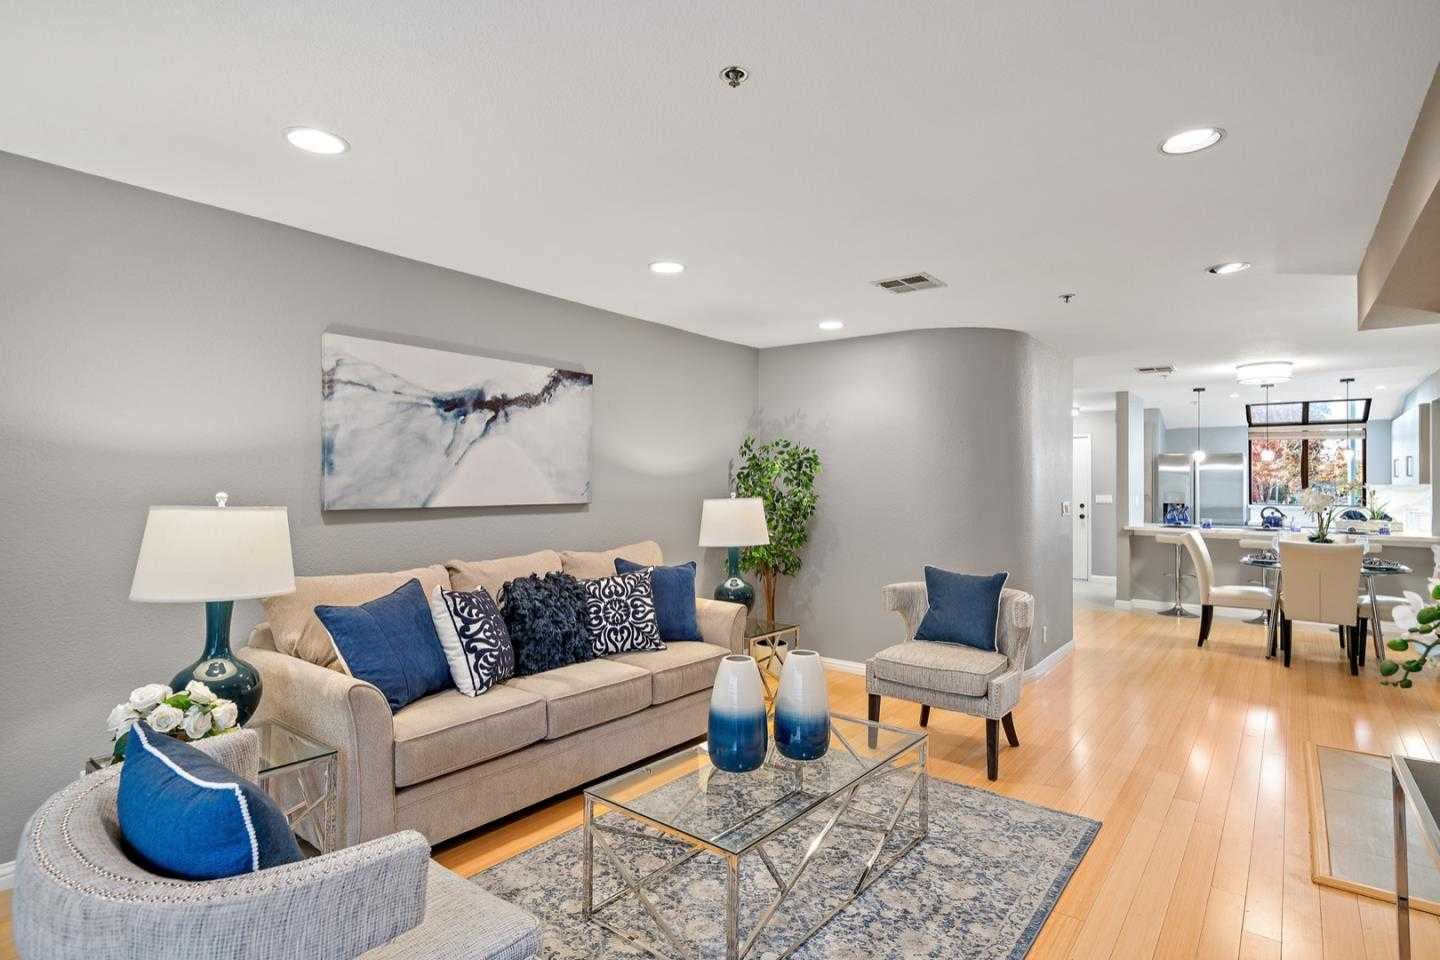 $1,375,000 - 2Br/2Ba -  for Sale in Palo Alto